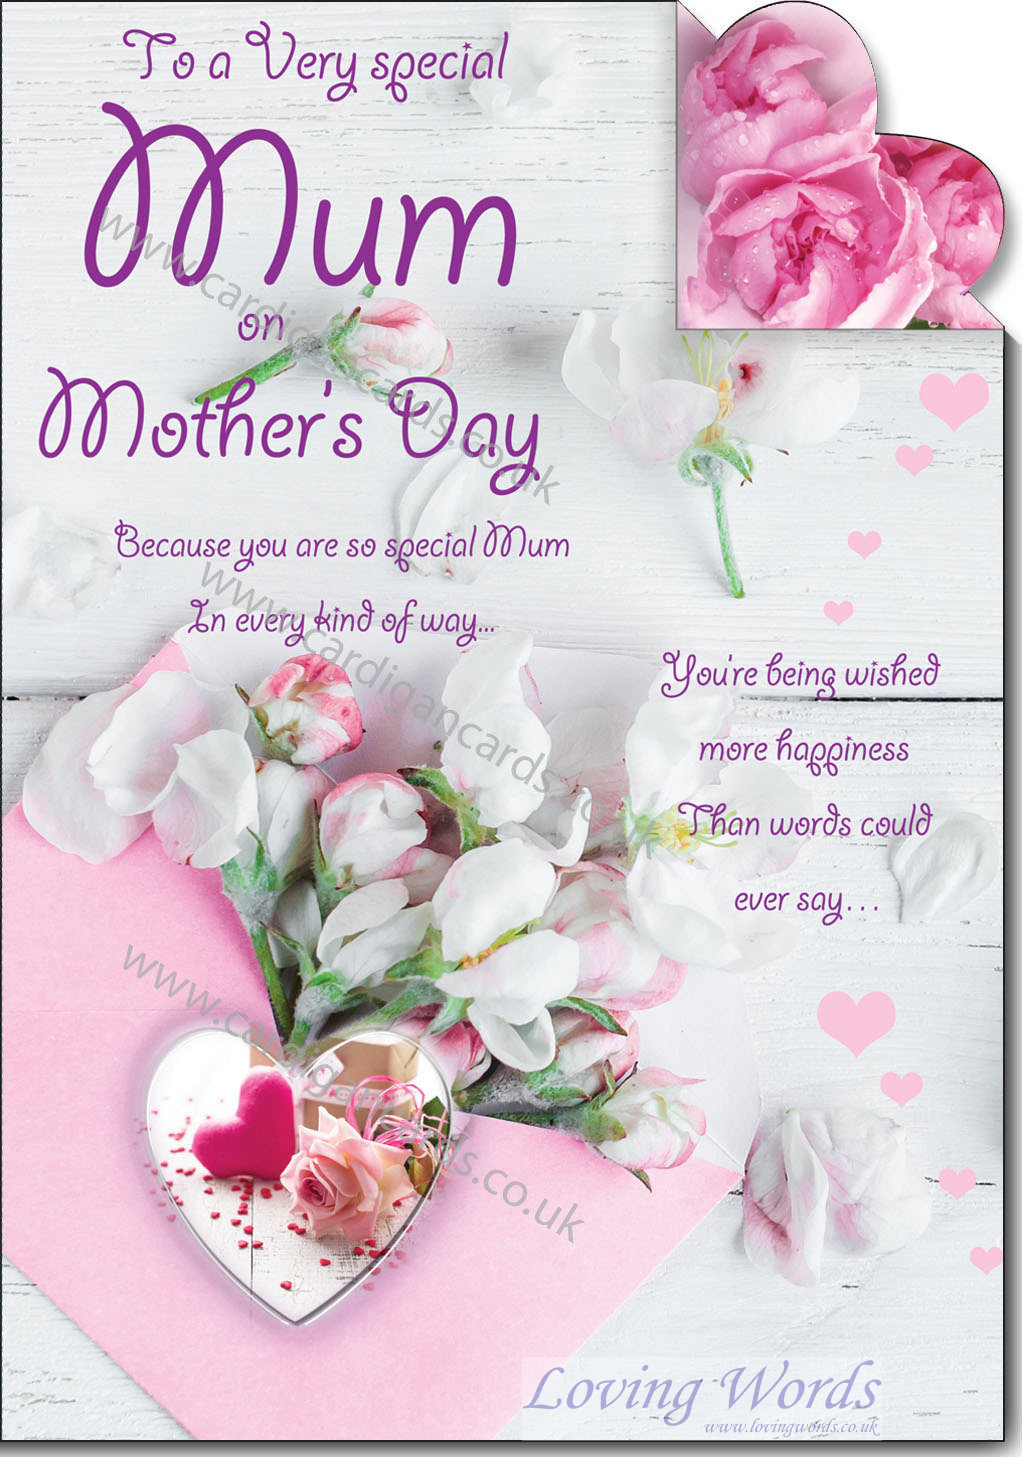 Special mum on mothers day greeting cards by loving words personalised greeting cards kristyandbryce Choice Image